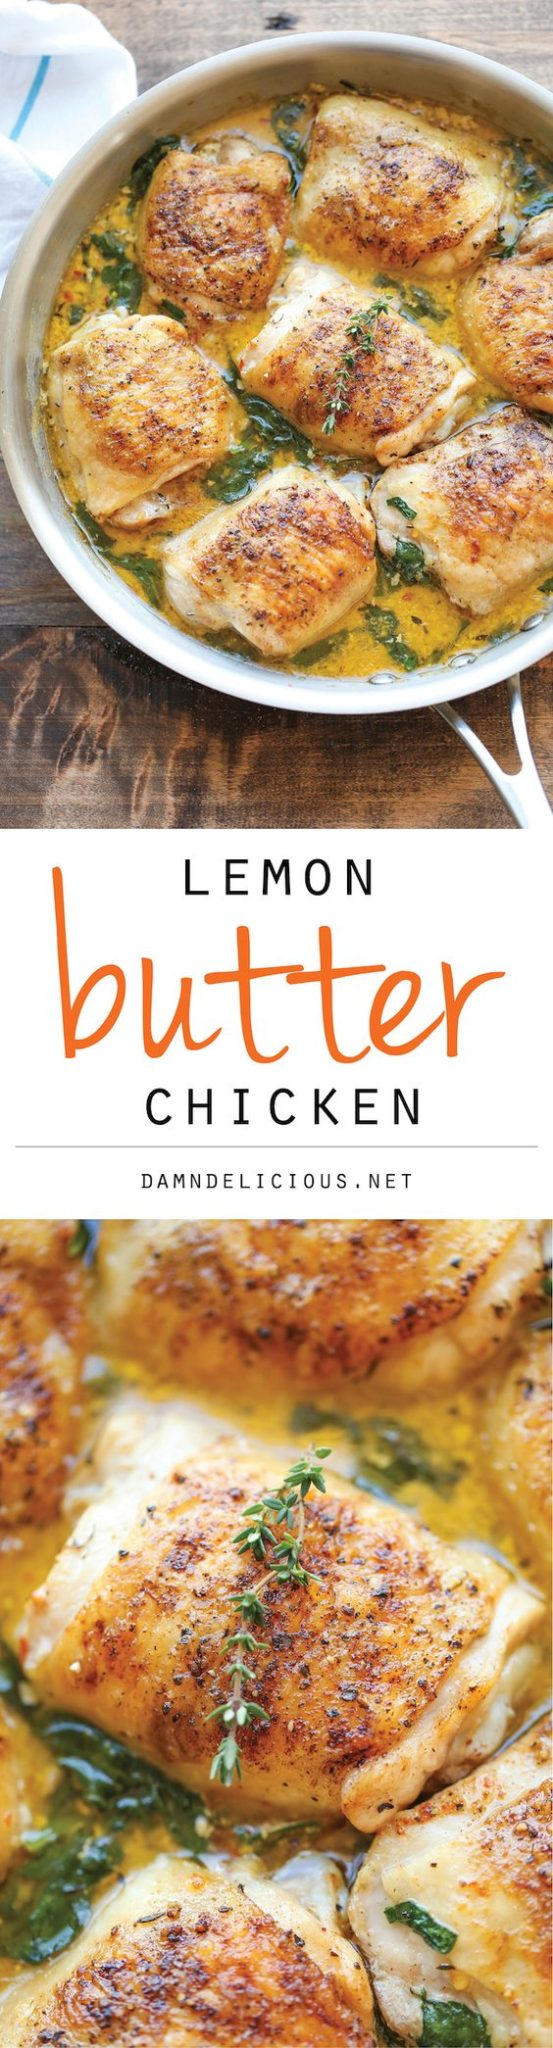 Chicken Recipes - Lemon Butter Chicken - Easy Crisp-Tender Chicken in Creamy Lemon Butter Sauce Recipe via Damn Delicious